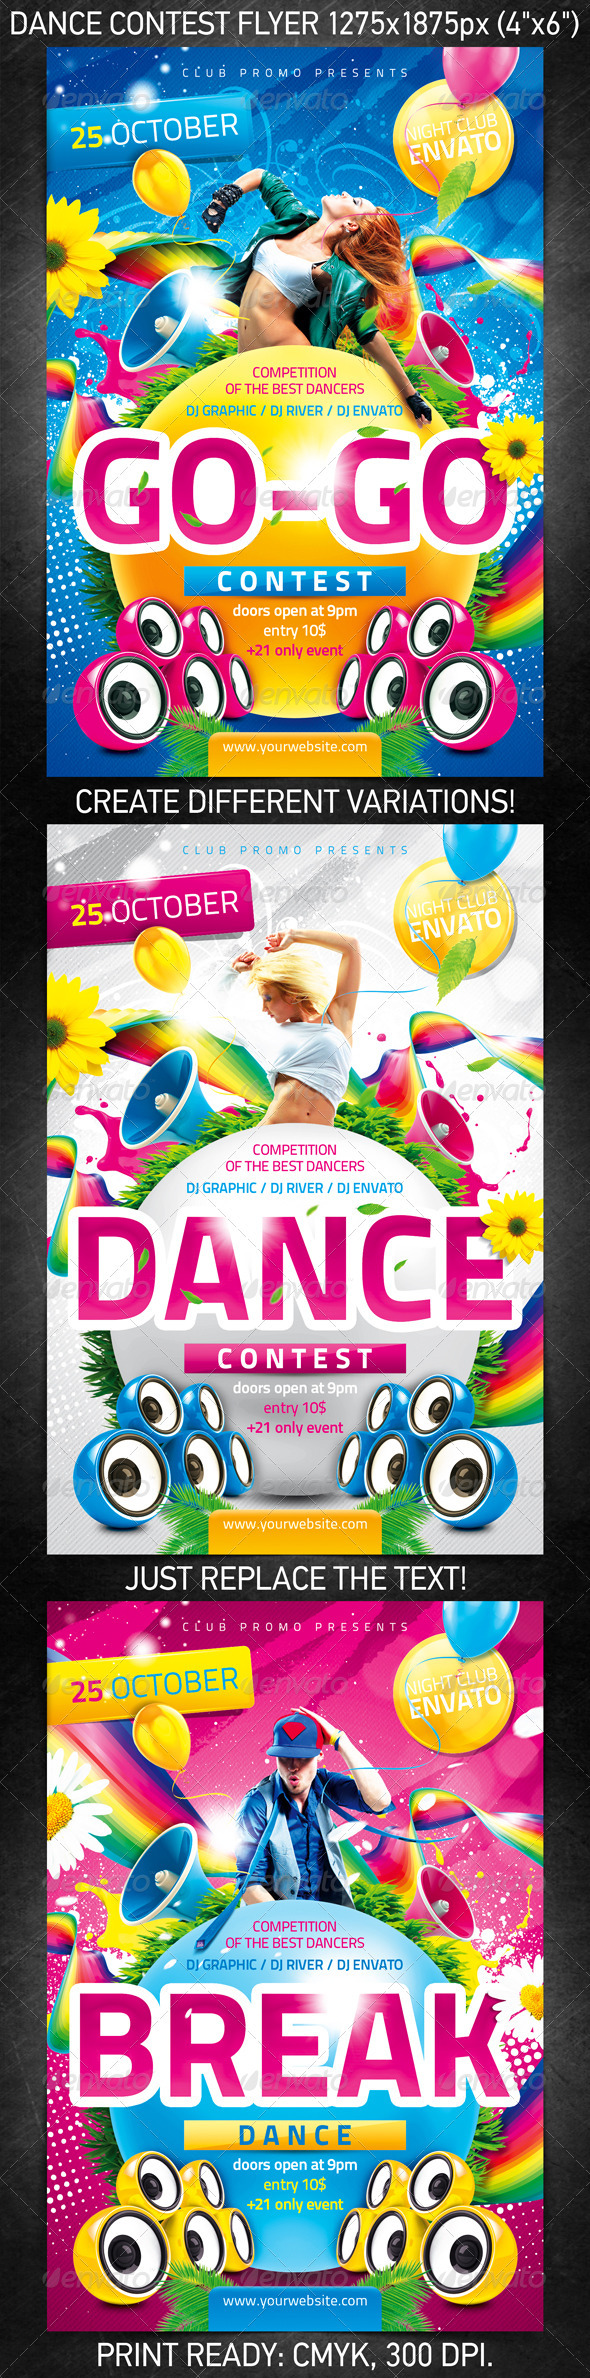 Dance Contest Flyer - Clubs & Parties Events